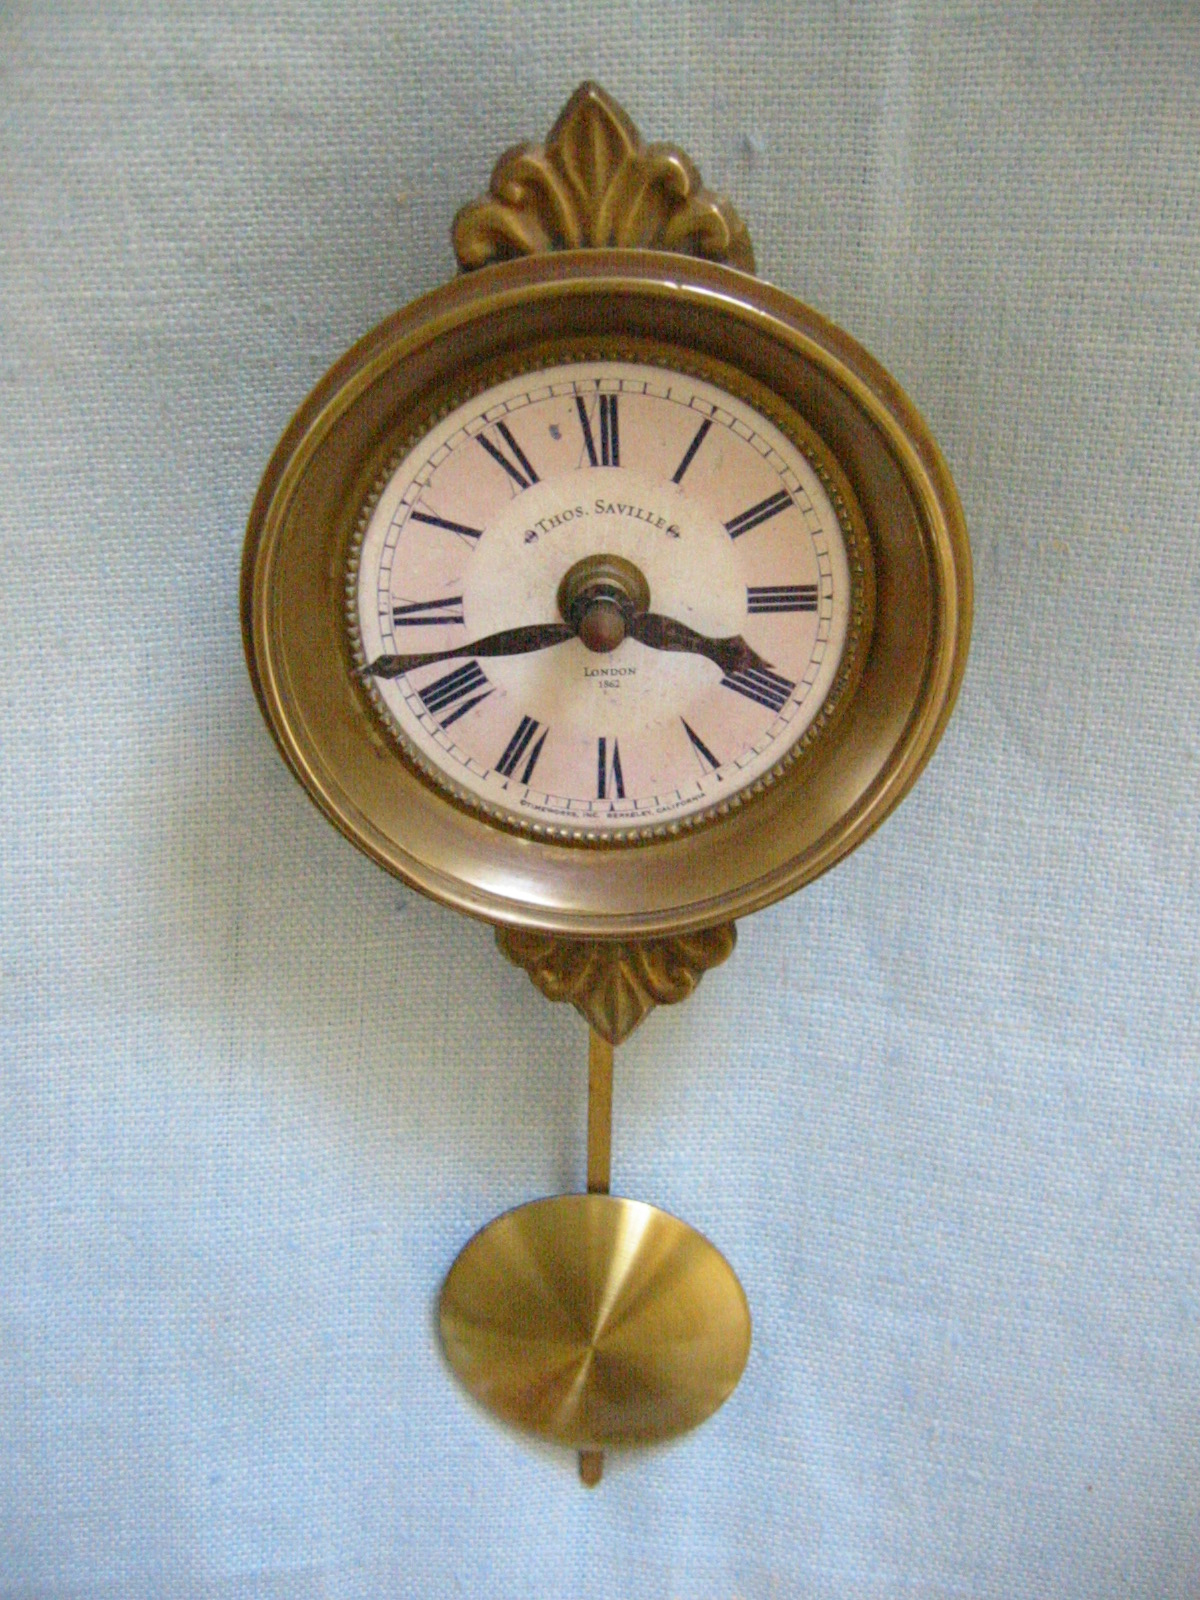 Thos saville london style brass pendulum wall clock for sale classifieds - Stylish pendulum wall clock ...